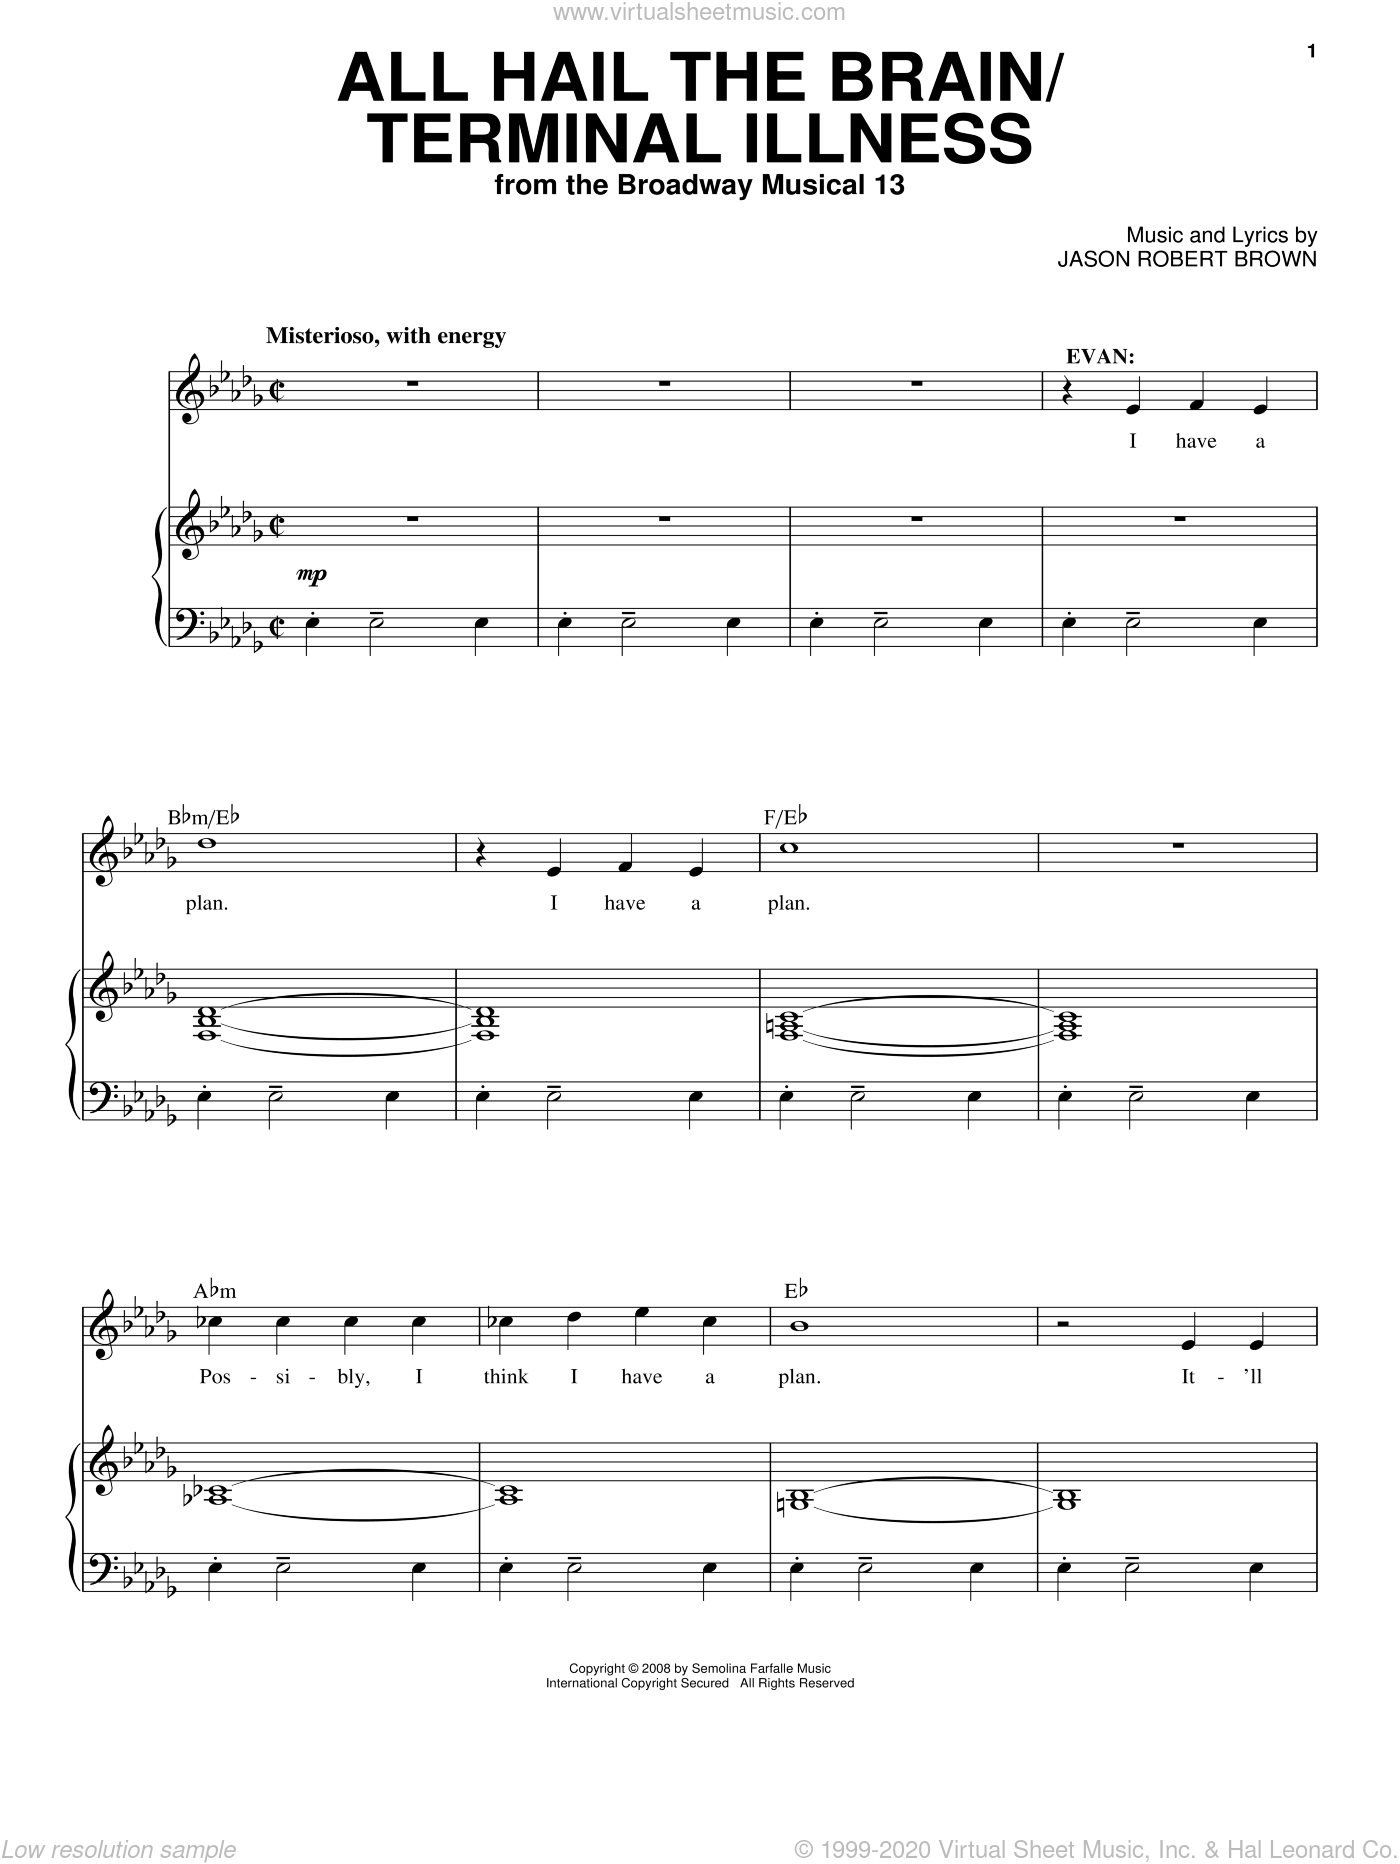 All Hail The Brain / Terminal Illness sheet music for voice and piano by Jason Robert Brown. Score Image Preview.